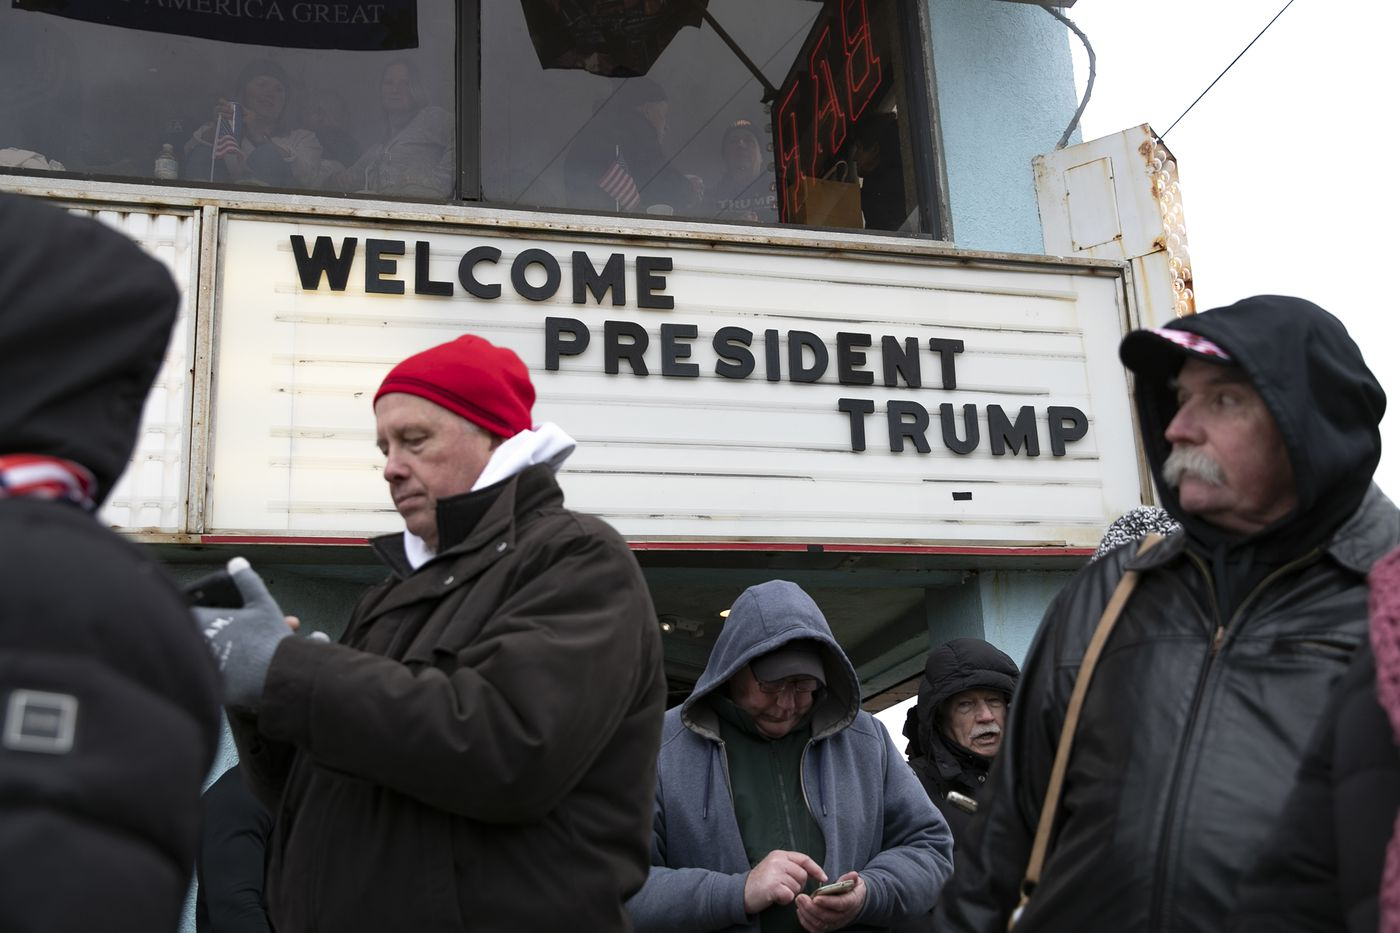 Thousands of people line up before the start of a Trump campaign rally in Wildwood, New Jersey on Jan. 28, 2020.